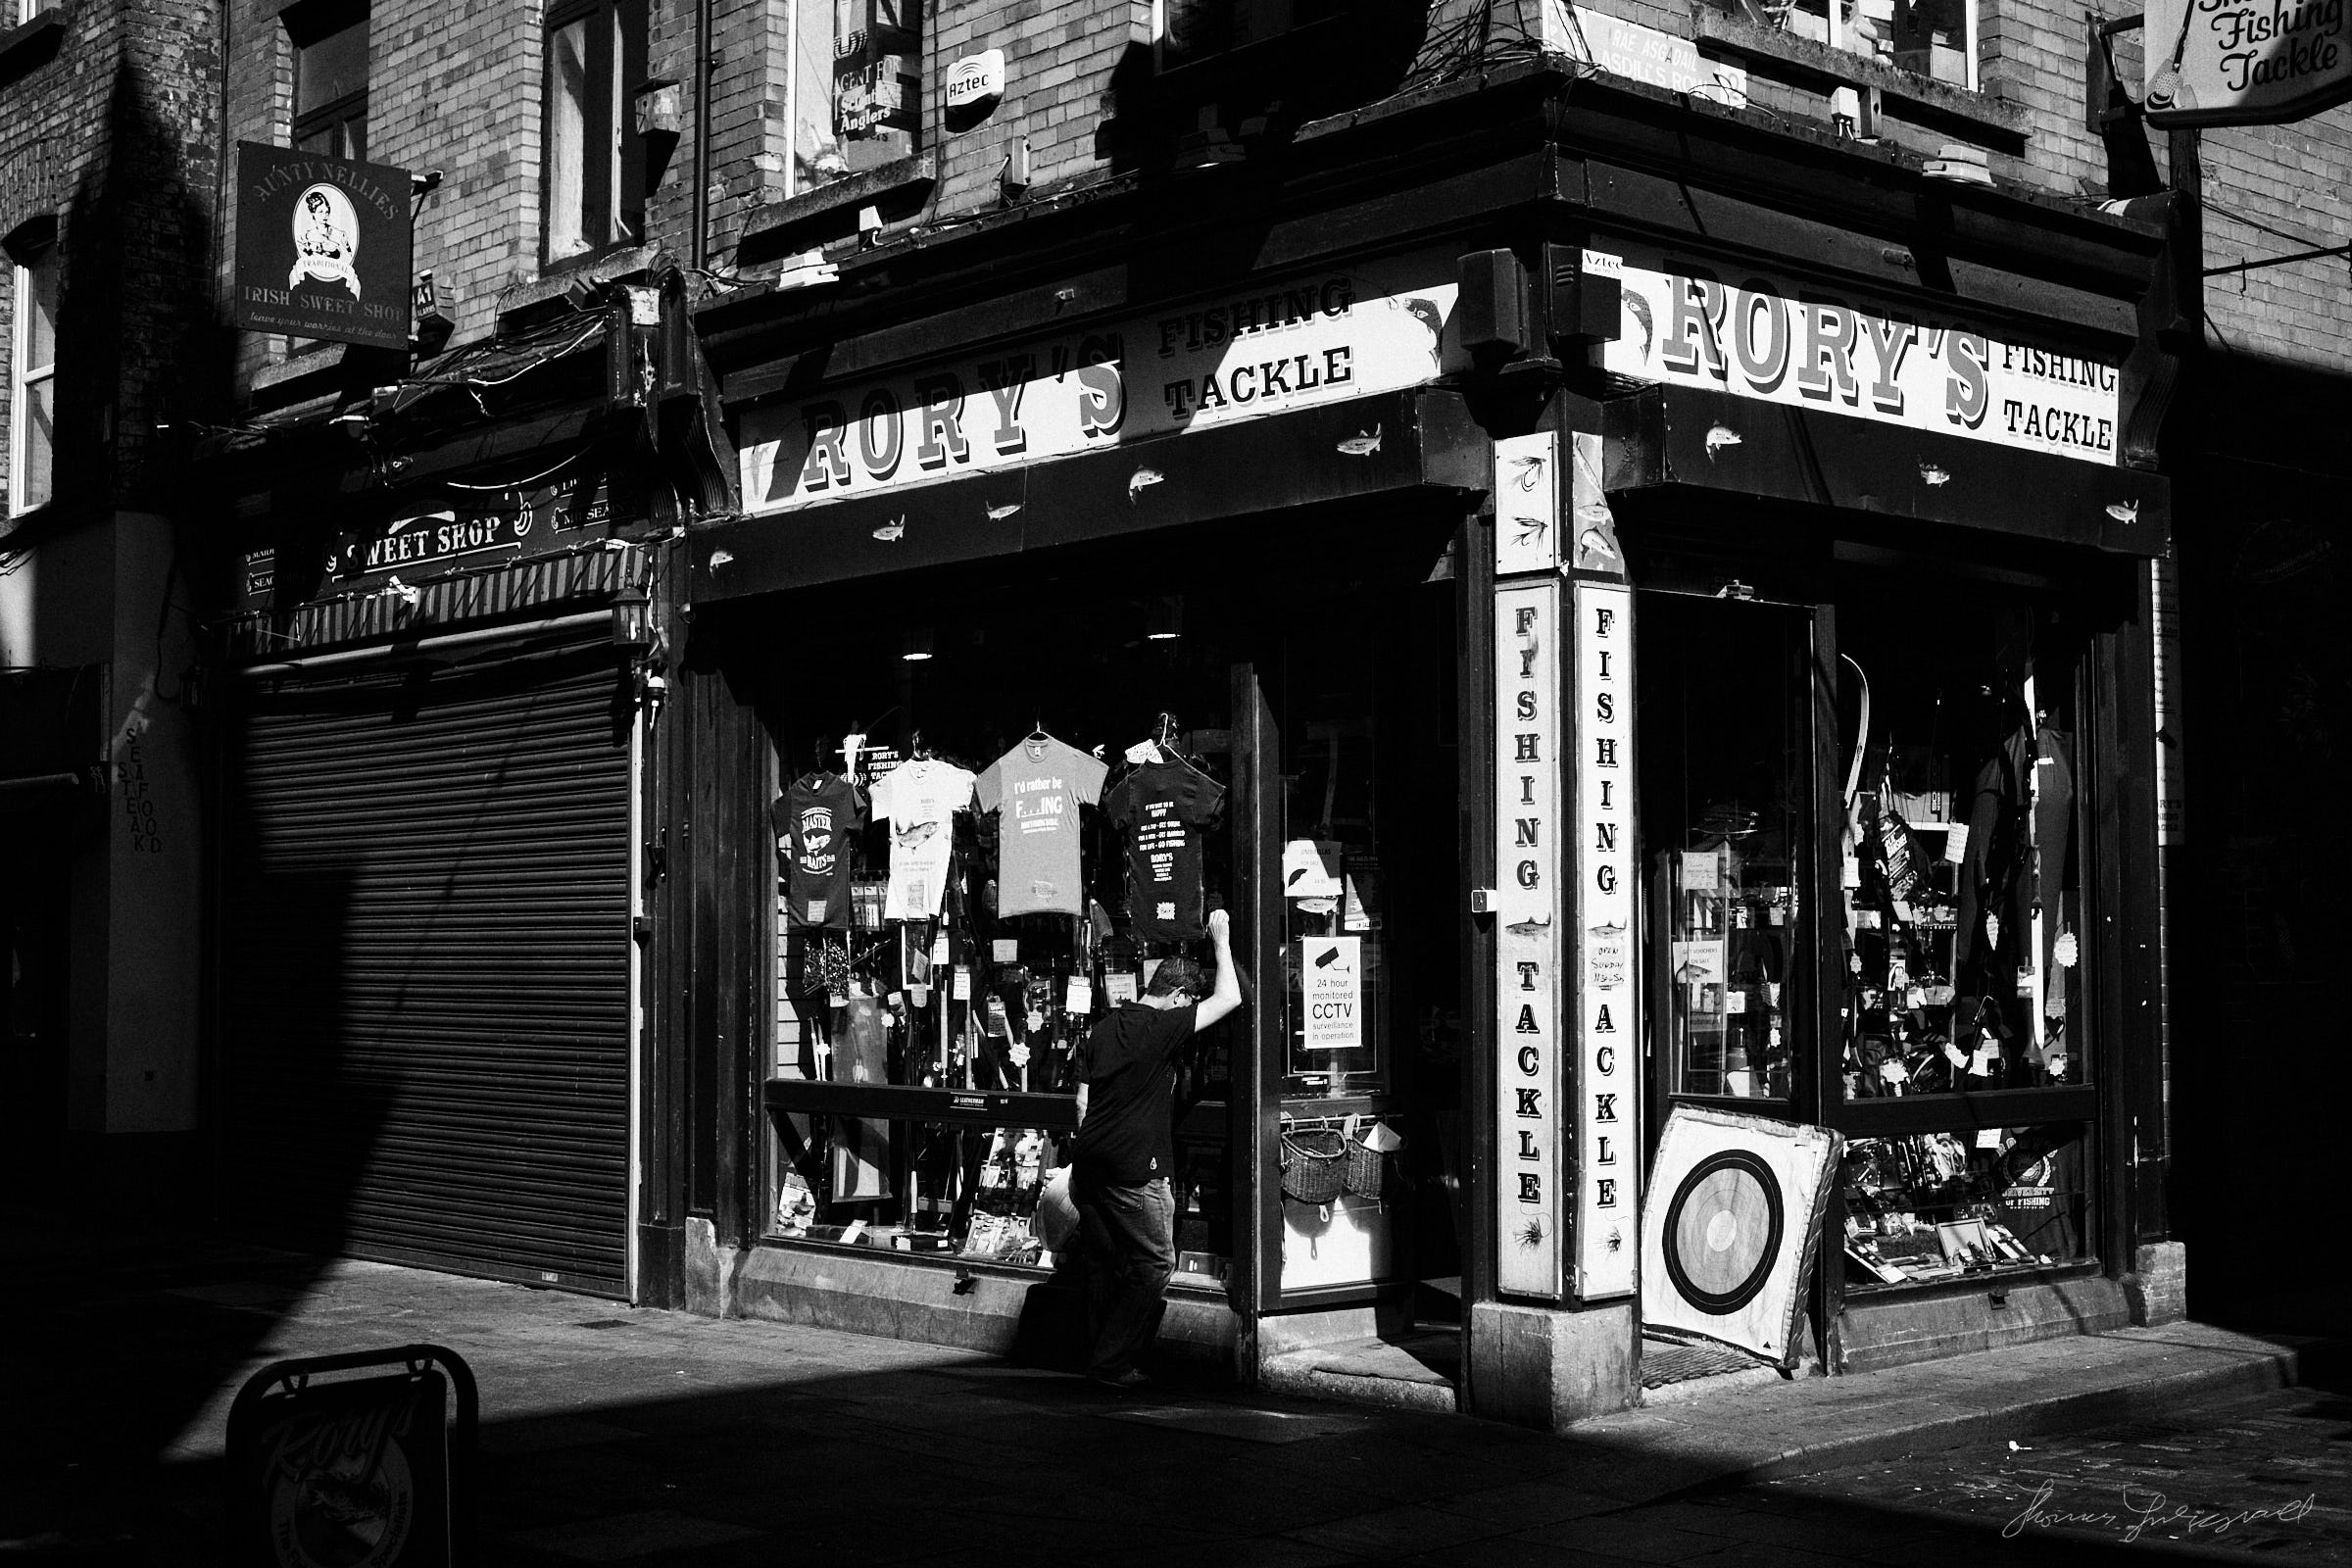 Rory's Fishing Tackle - The Streets of Dublin